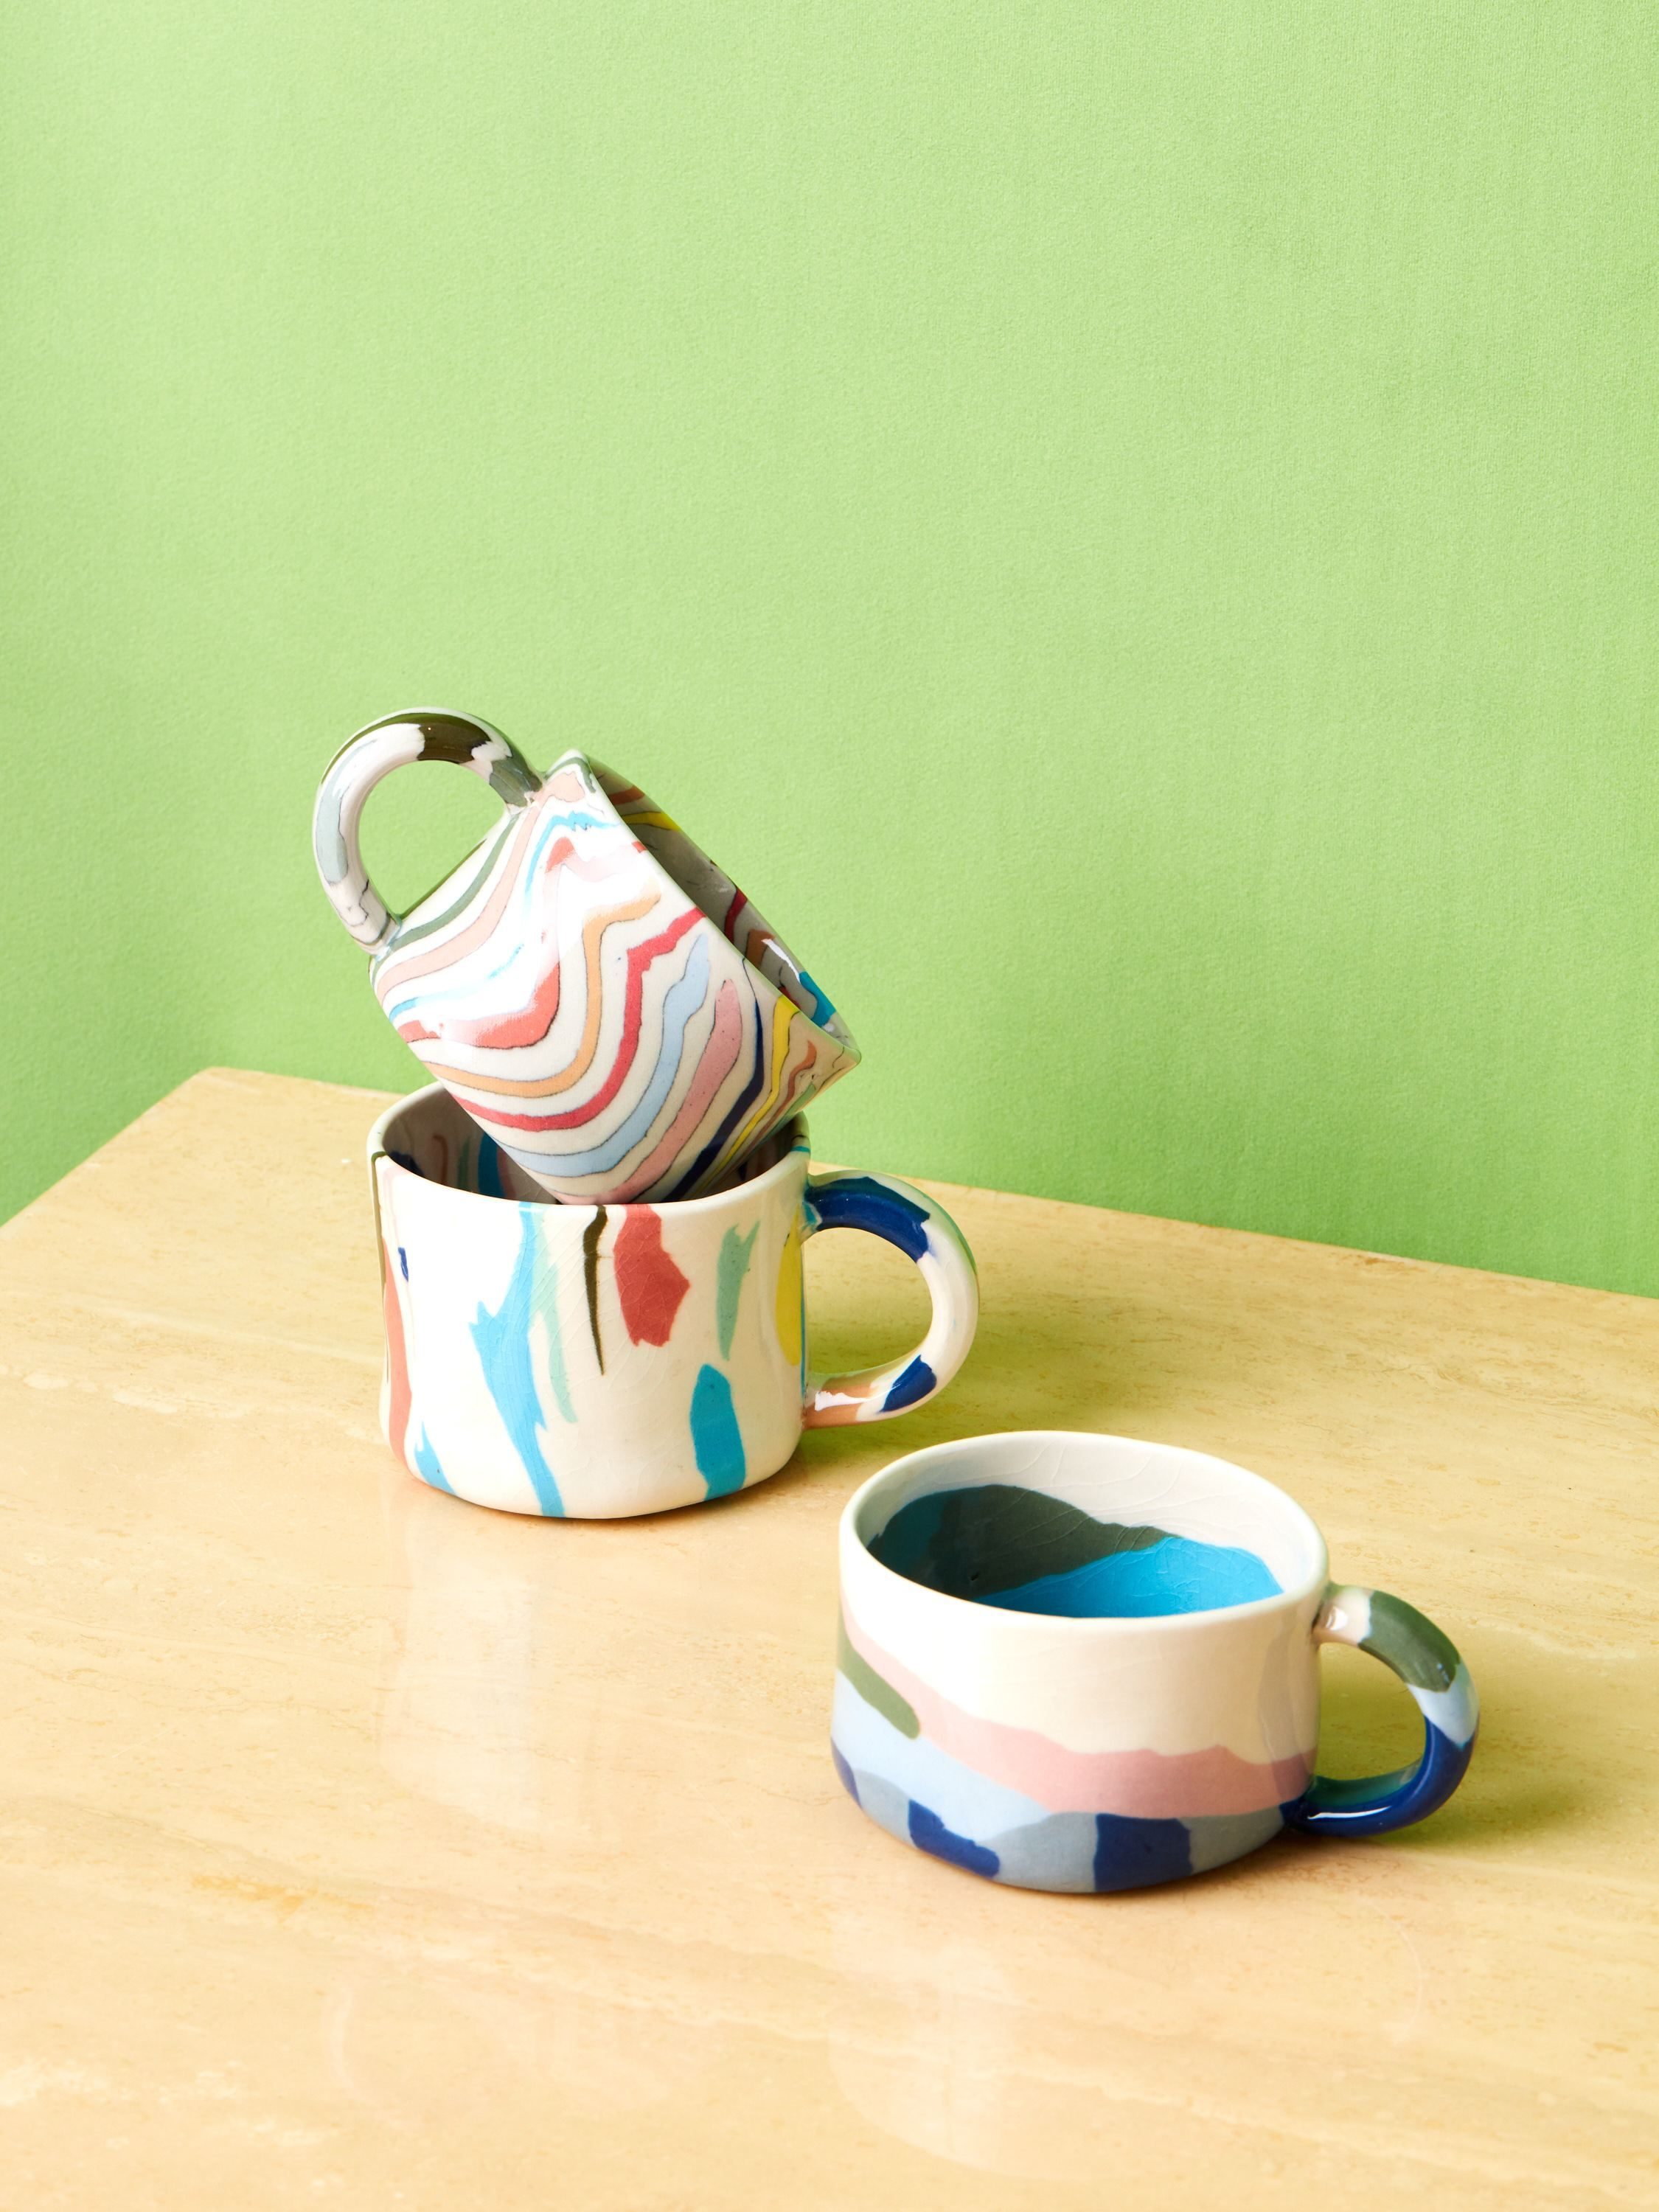 Handmade ceramic mugs by New York based ceramicist, Risa Nishimori. Created in the tradition Japanese nerikomi ceramic technique of mixing colored clays to create patterns, each piece is unique, the mugs you receive may slightly differ from the photos due to the nature of this ceramic technique. Price reflects the cost of one single mug. Approx 2.5